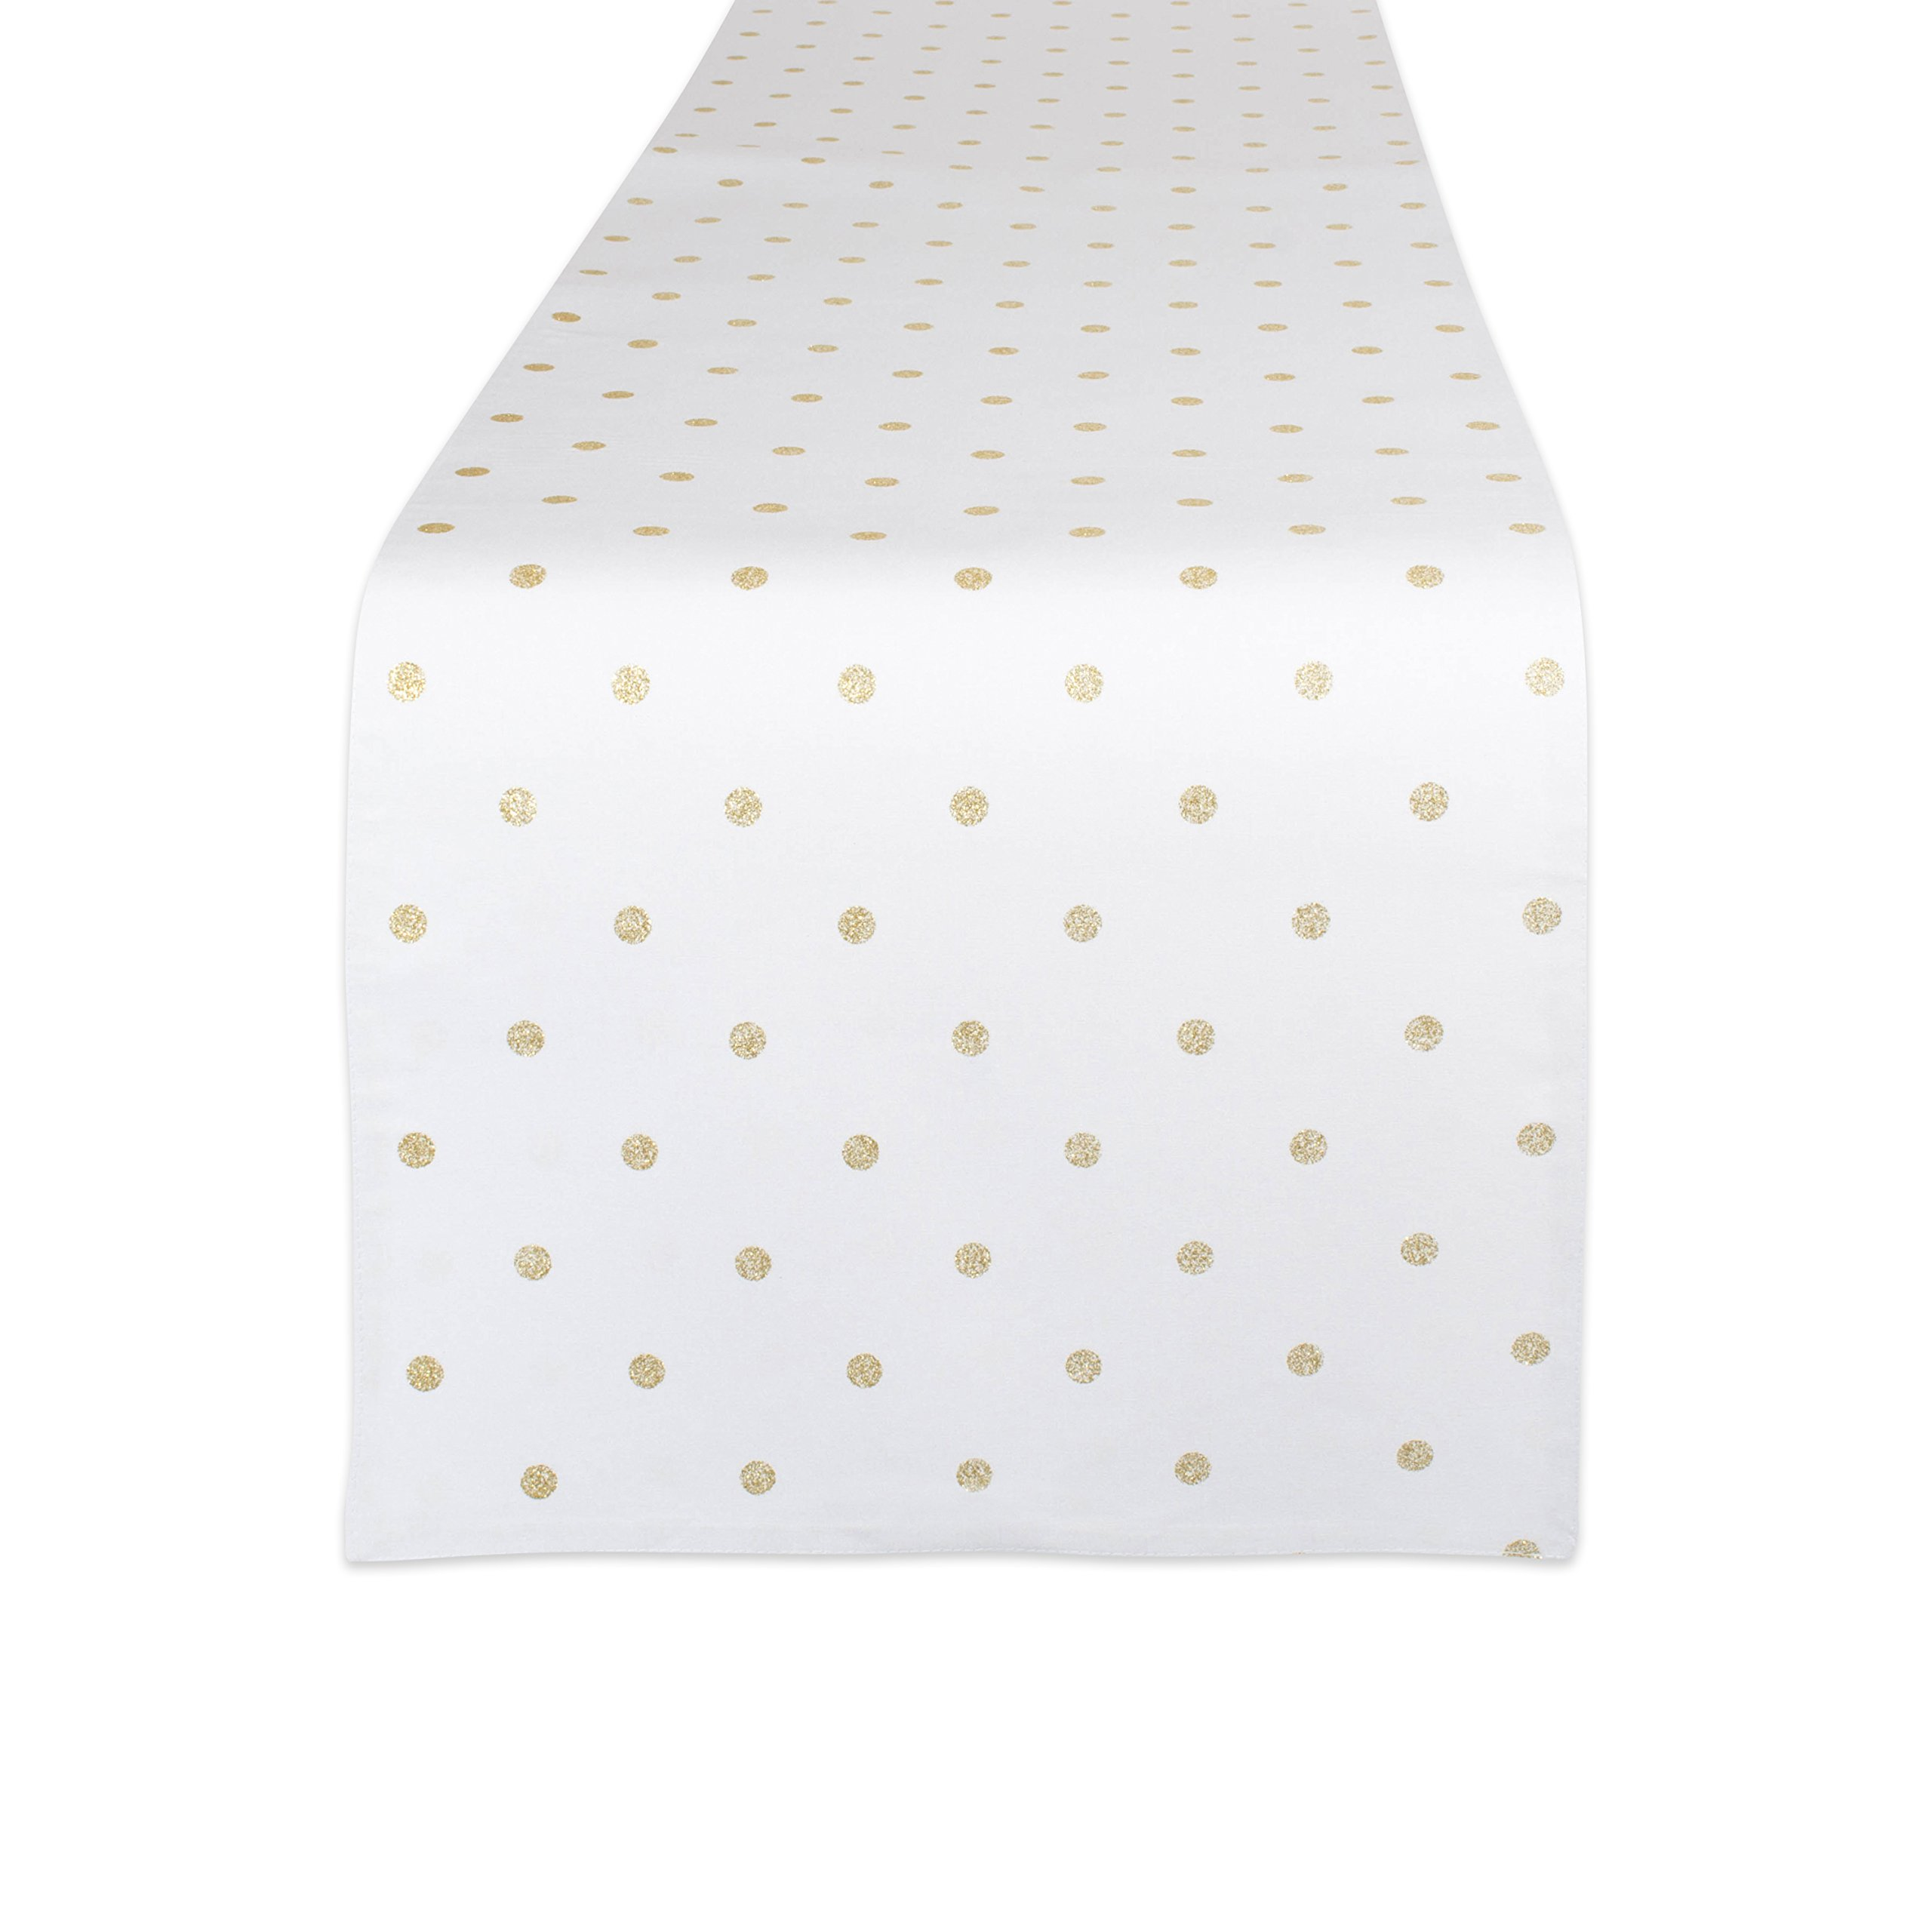 DII Z02217 Reversible Polka Dot Cotton Dining Room, Barbecues, Foyer Summer Parties, and Everyday Use, 13.75x72 Table Runner, White Base and Metallic Gold Dots